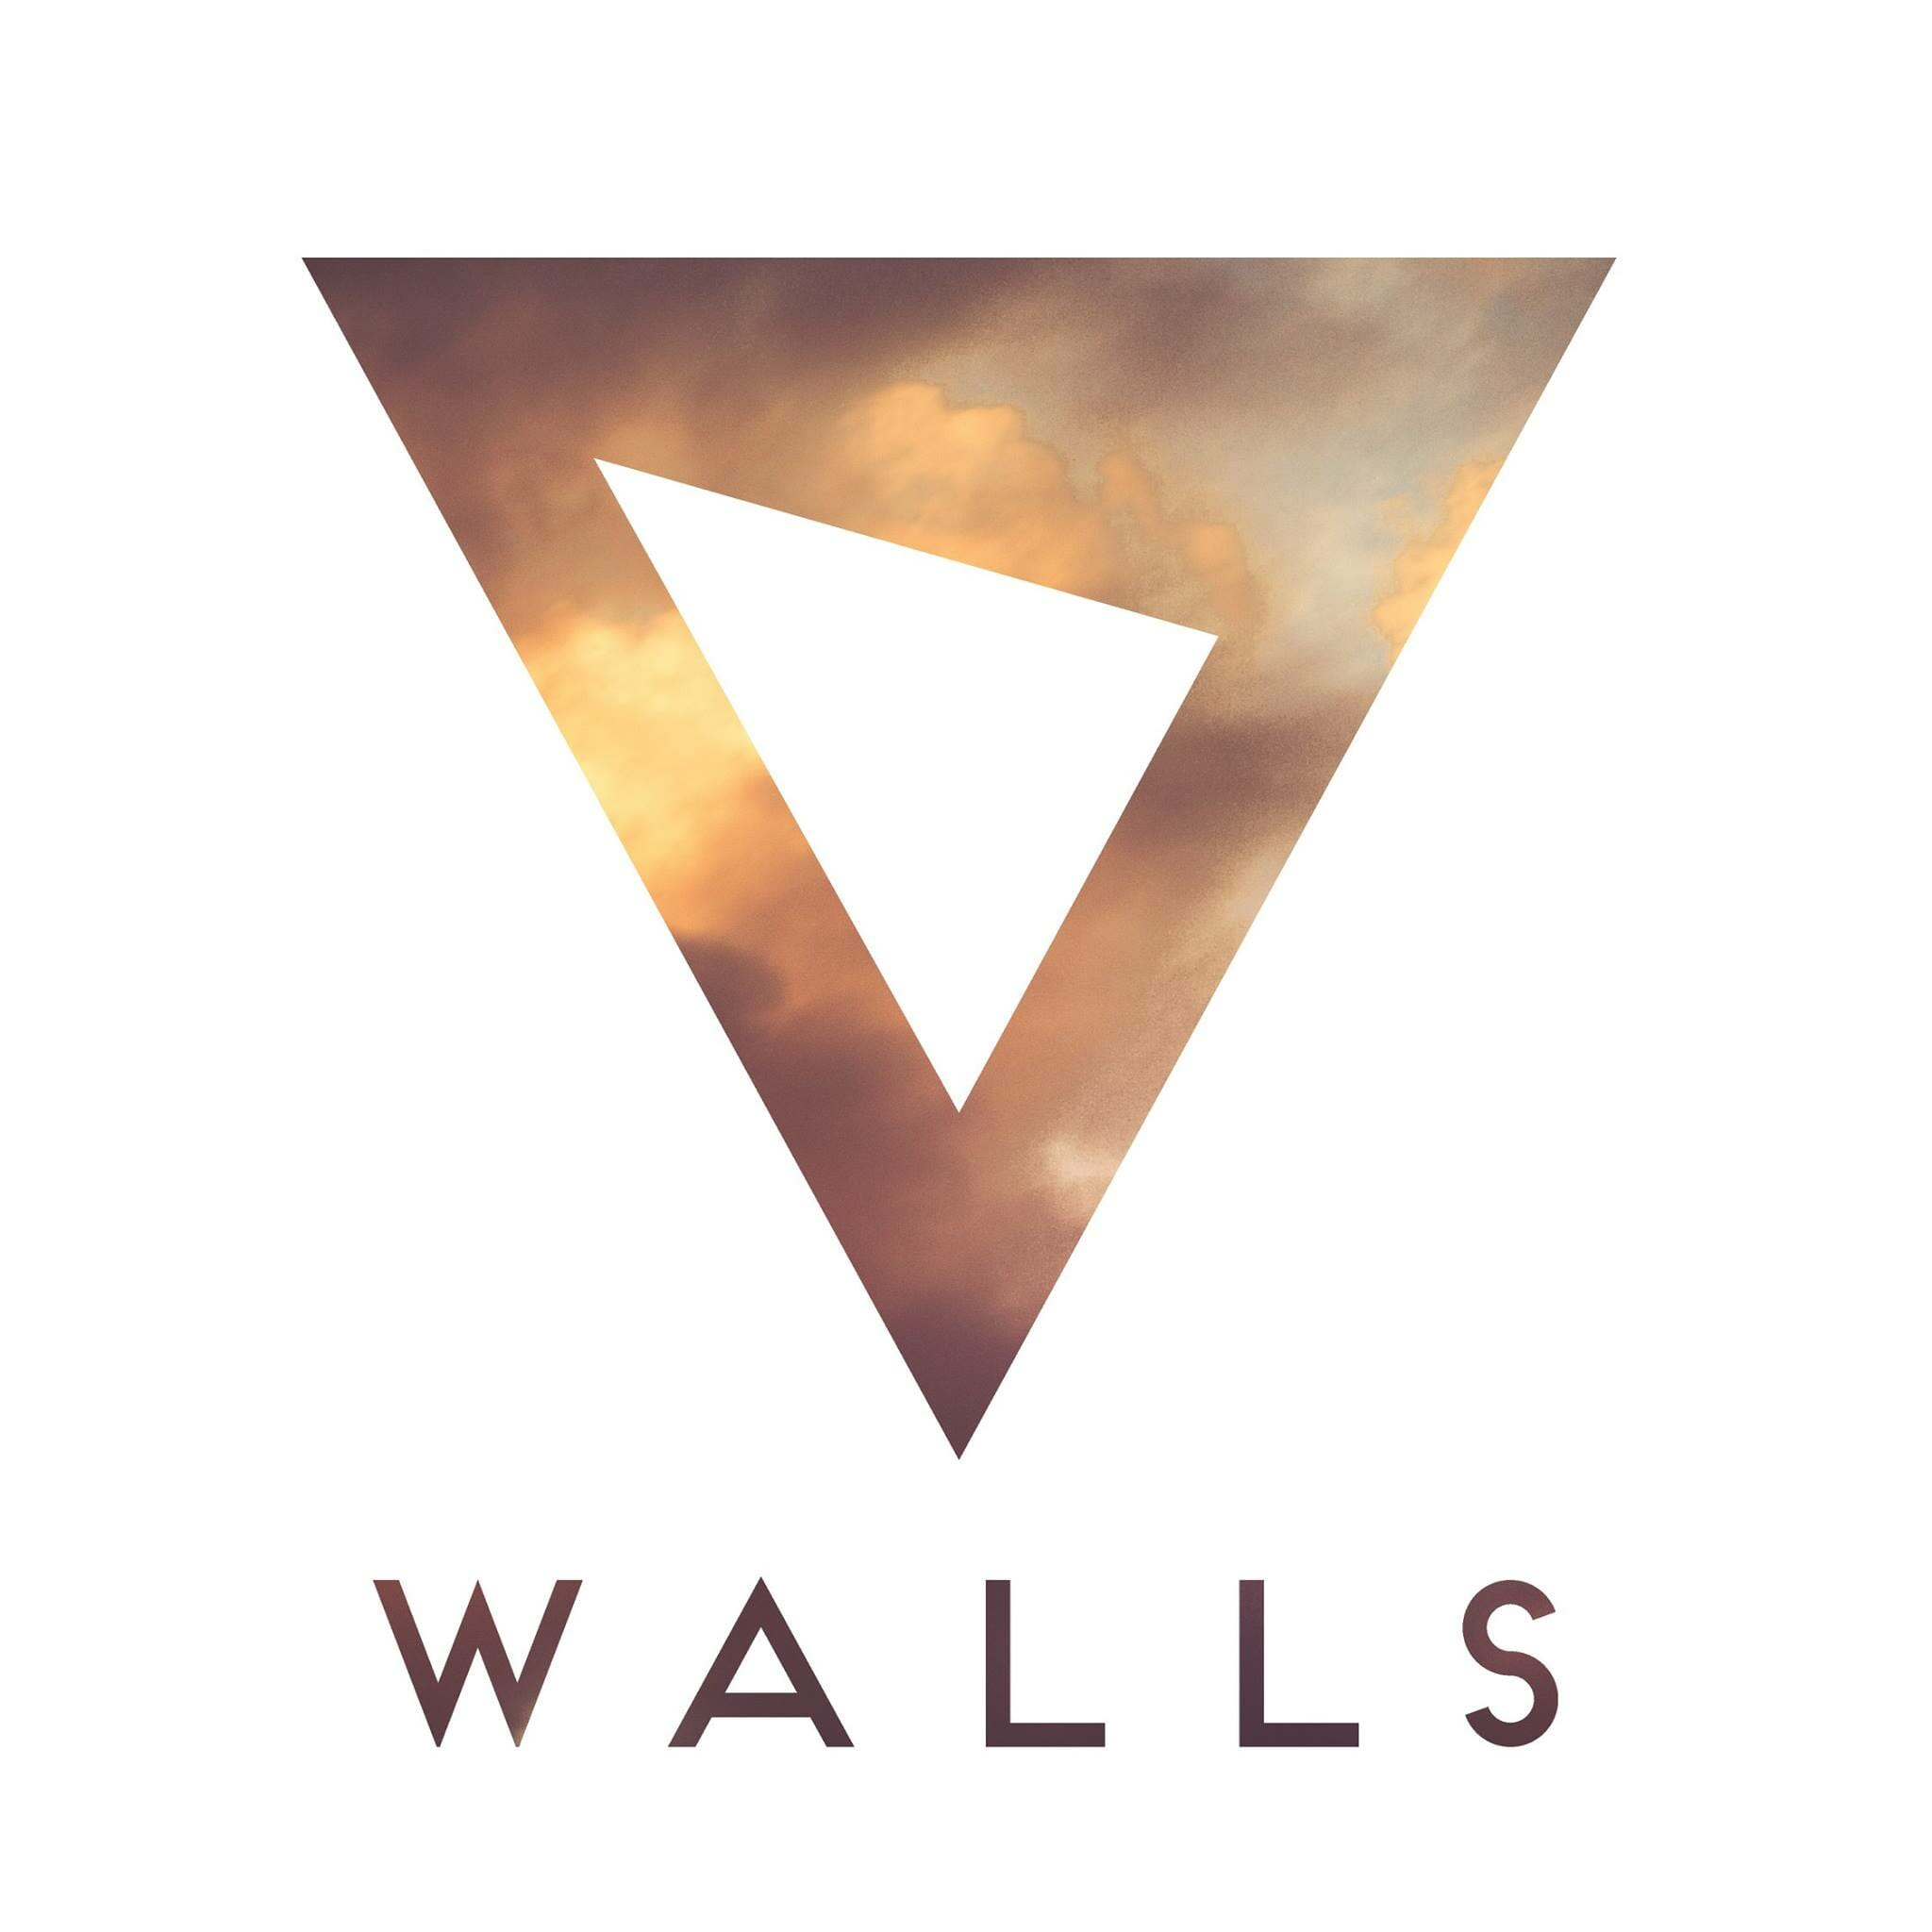 Slaptop – Walls (Original Mix)Walls